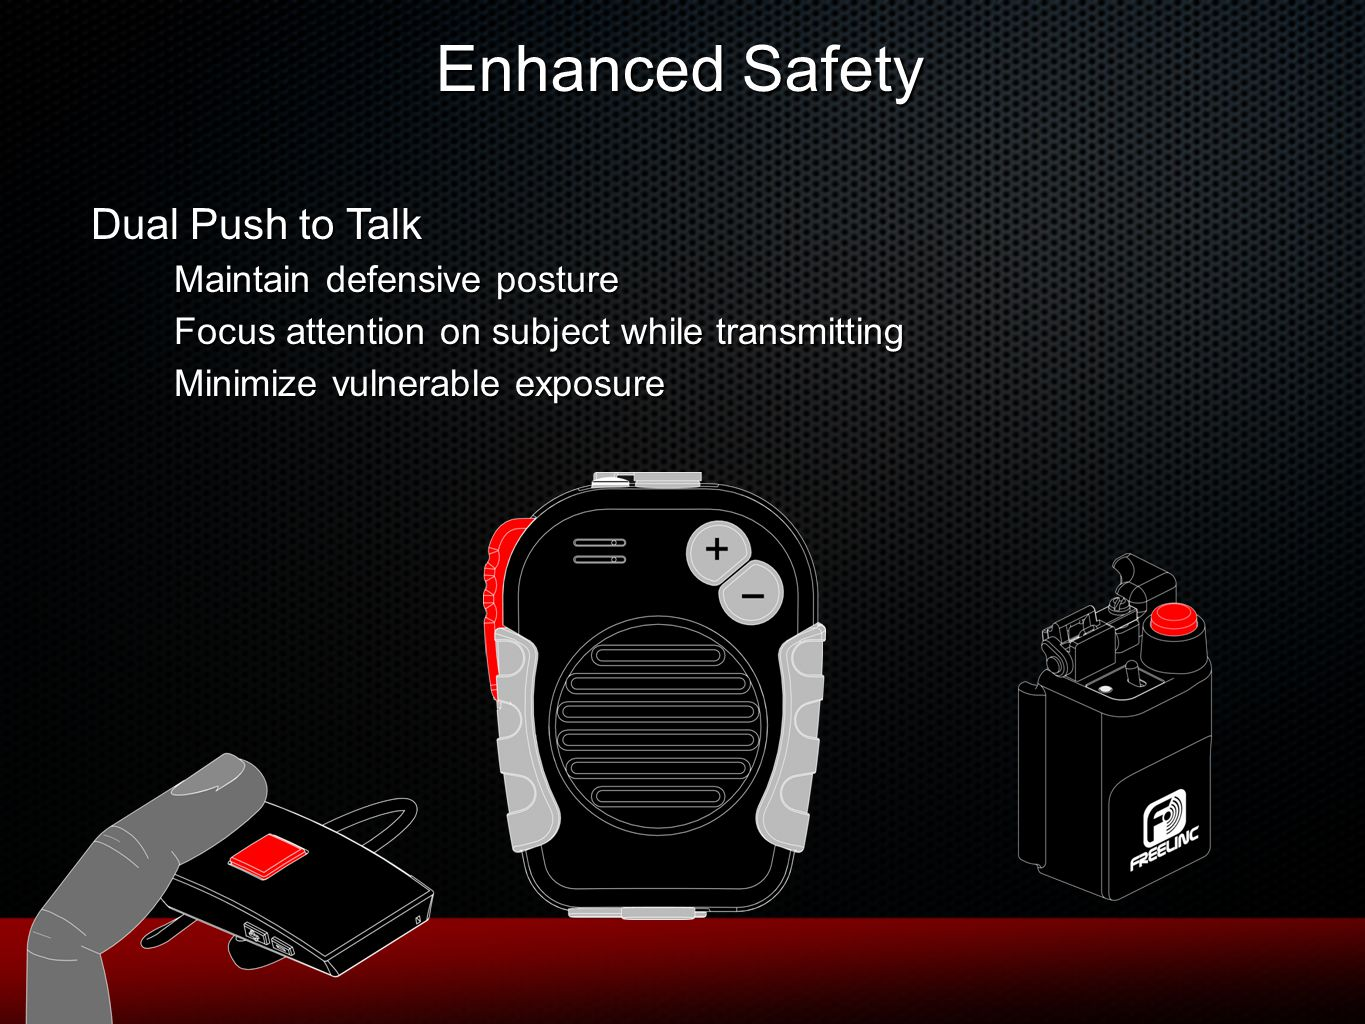 Turn ON Device Press and Hold the PTT Push-to-Talk Button for 2 seconds and Listen for Beeps FreeMic200 Speakermic